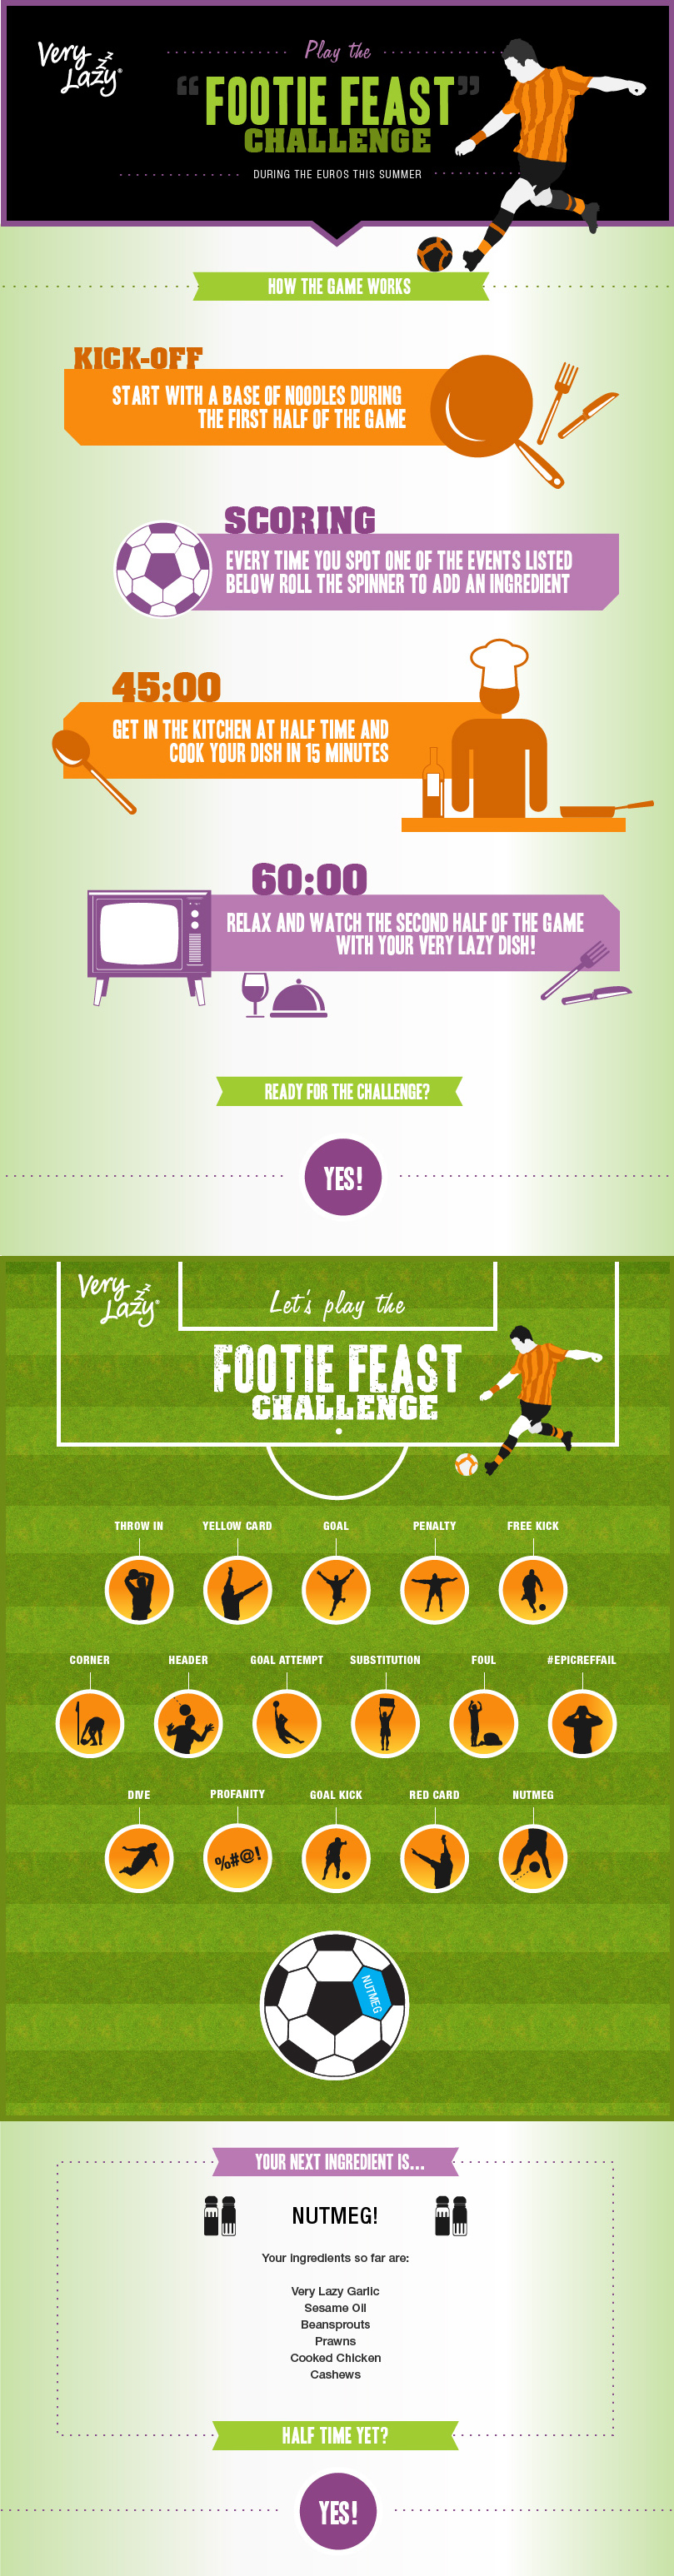 "Very Lazy infographic and Facebook app ""Footie Feast"